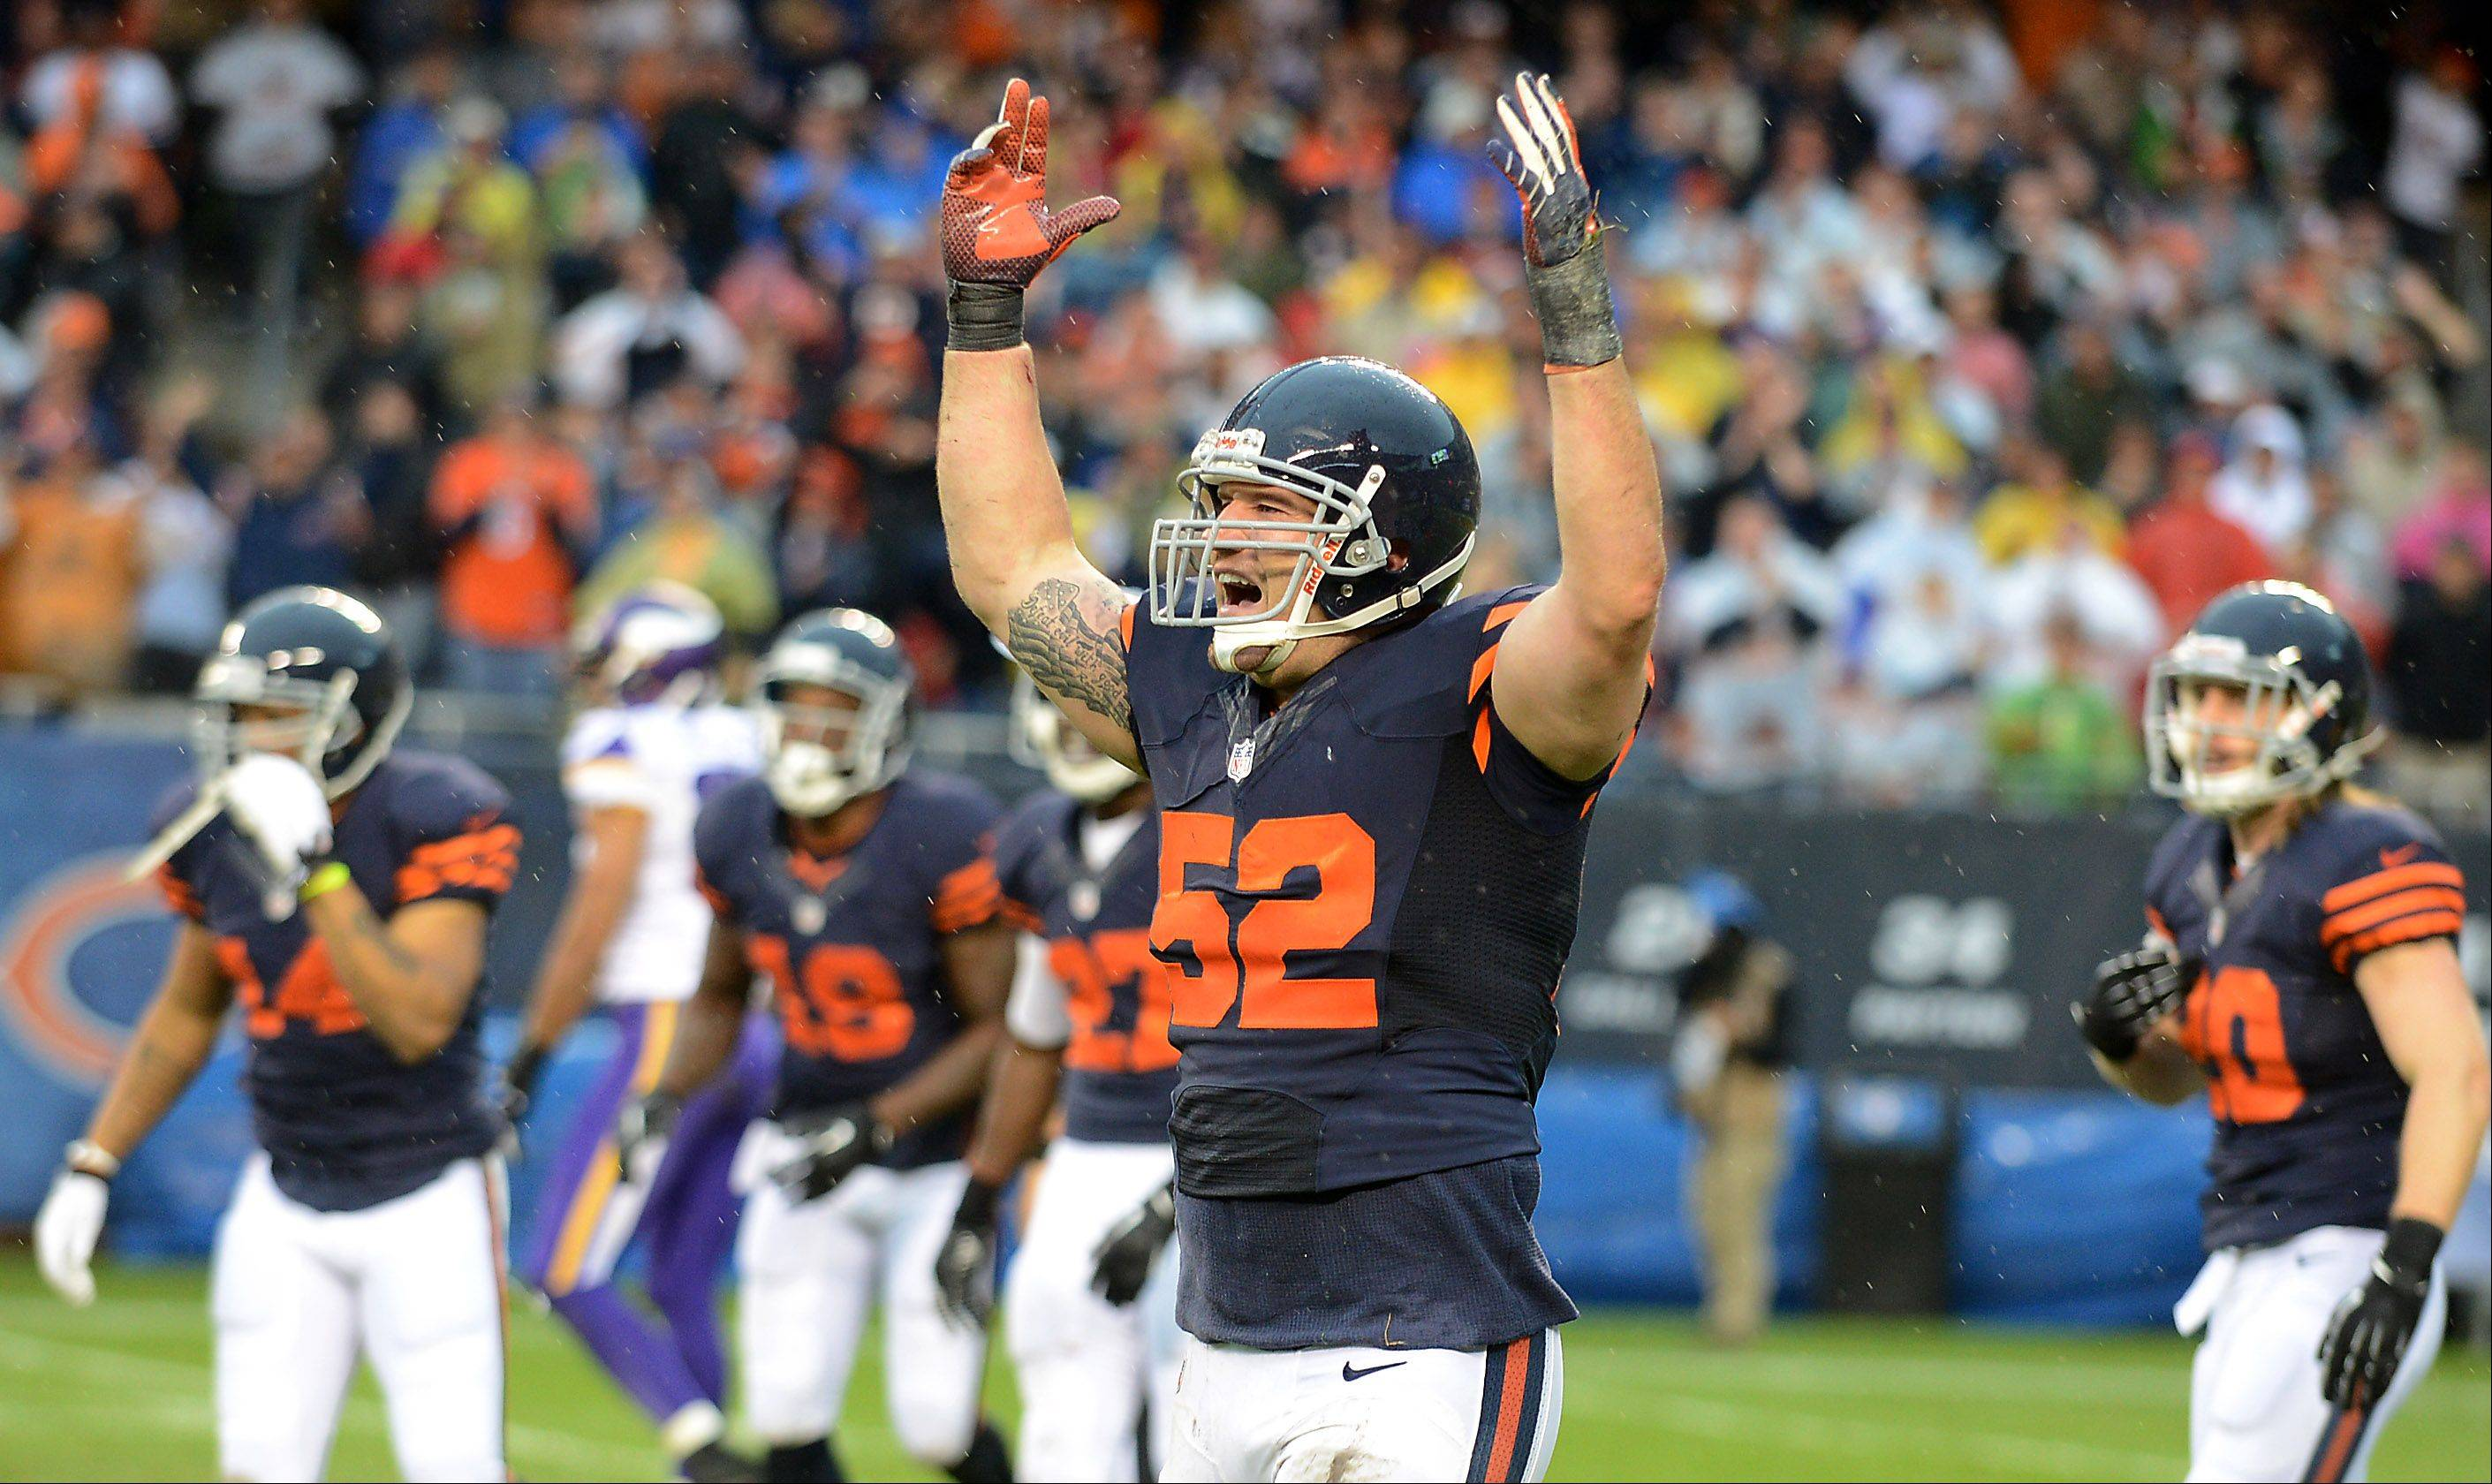 Blake Costanzo (52) and the Bears special teams celebrate after taking ball away from Minnesota on the final kickoff during Sunday's game at Soldier Field in Chicago.